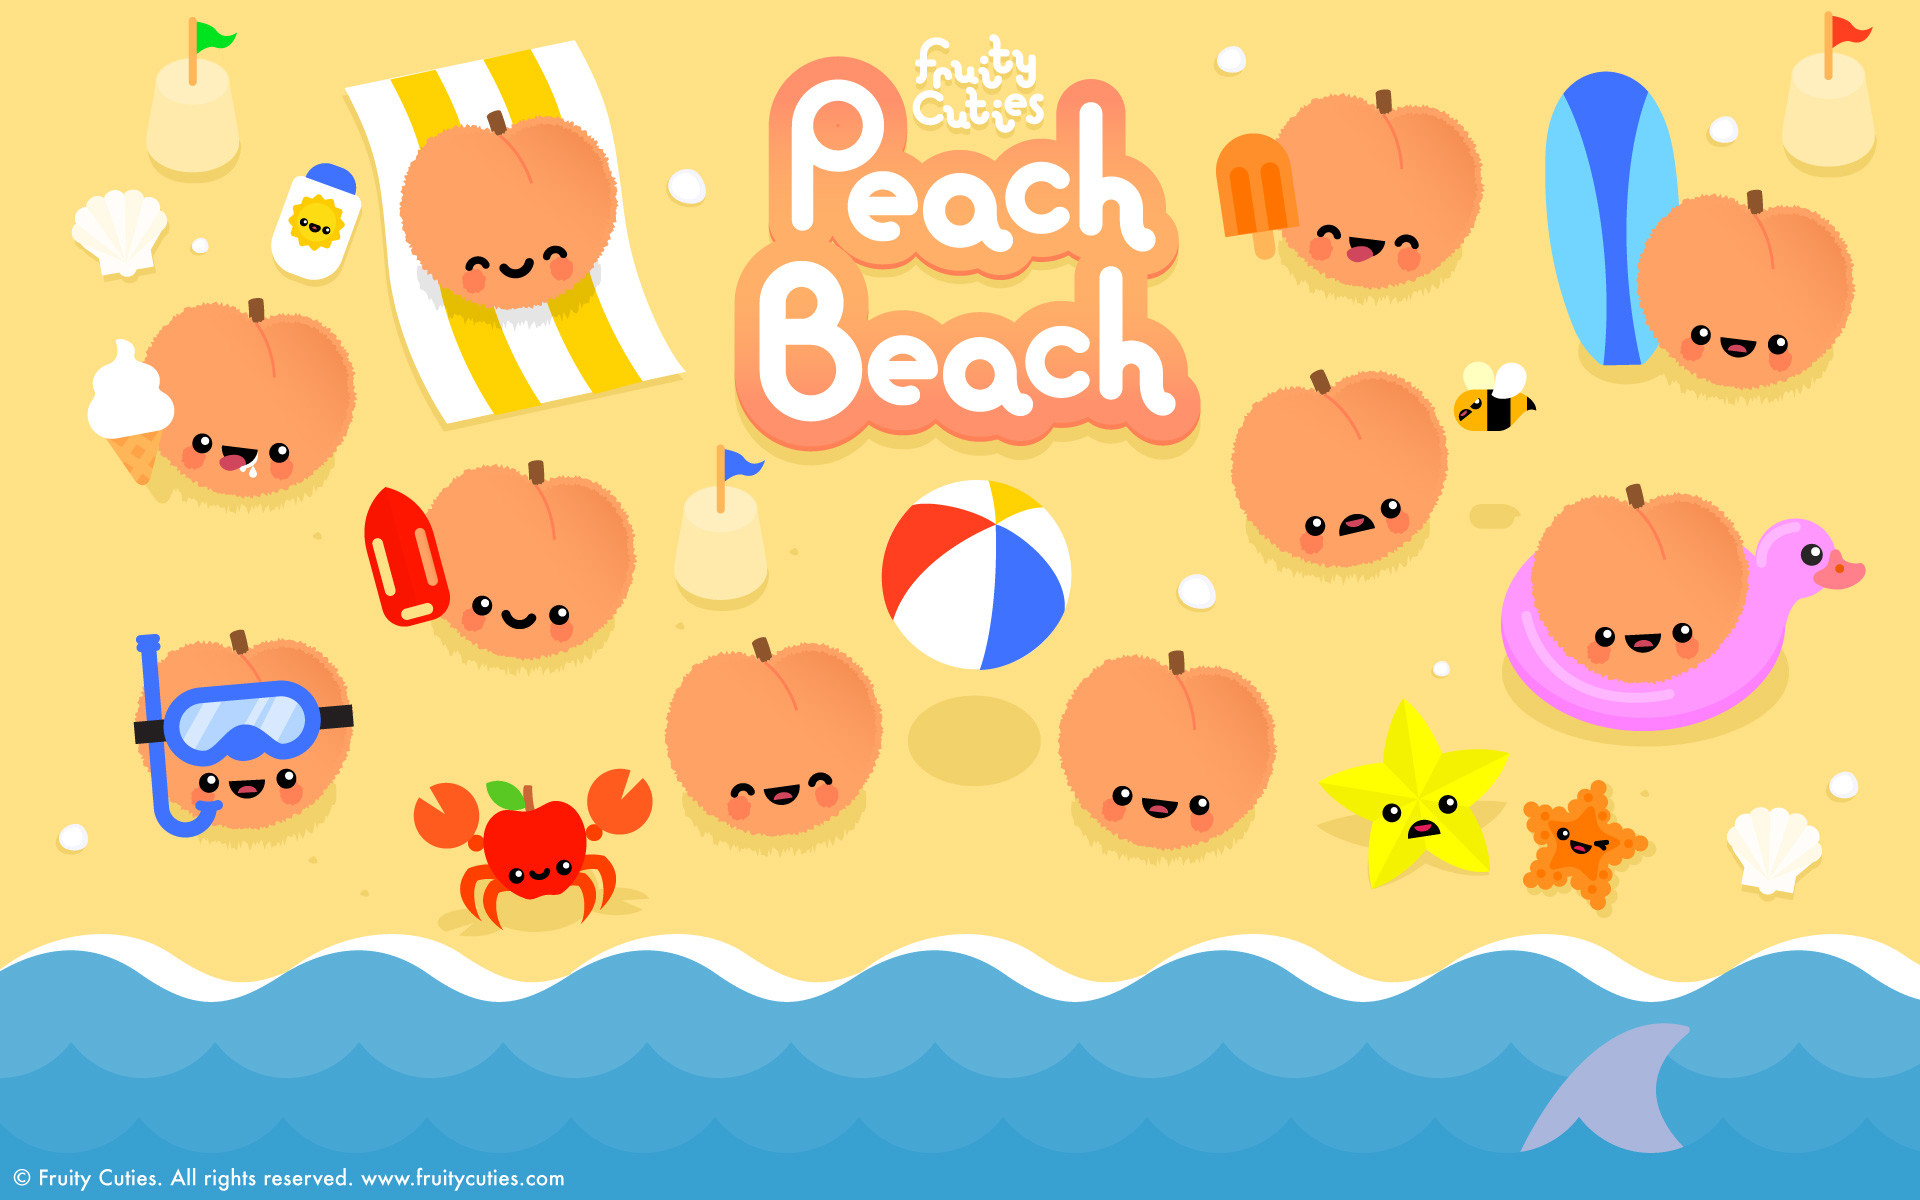 1920x1200 peach-beach-widescreen-wallpaper.jpg (1920×1200)